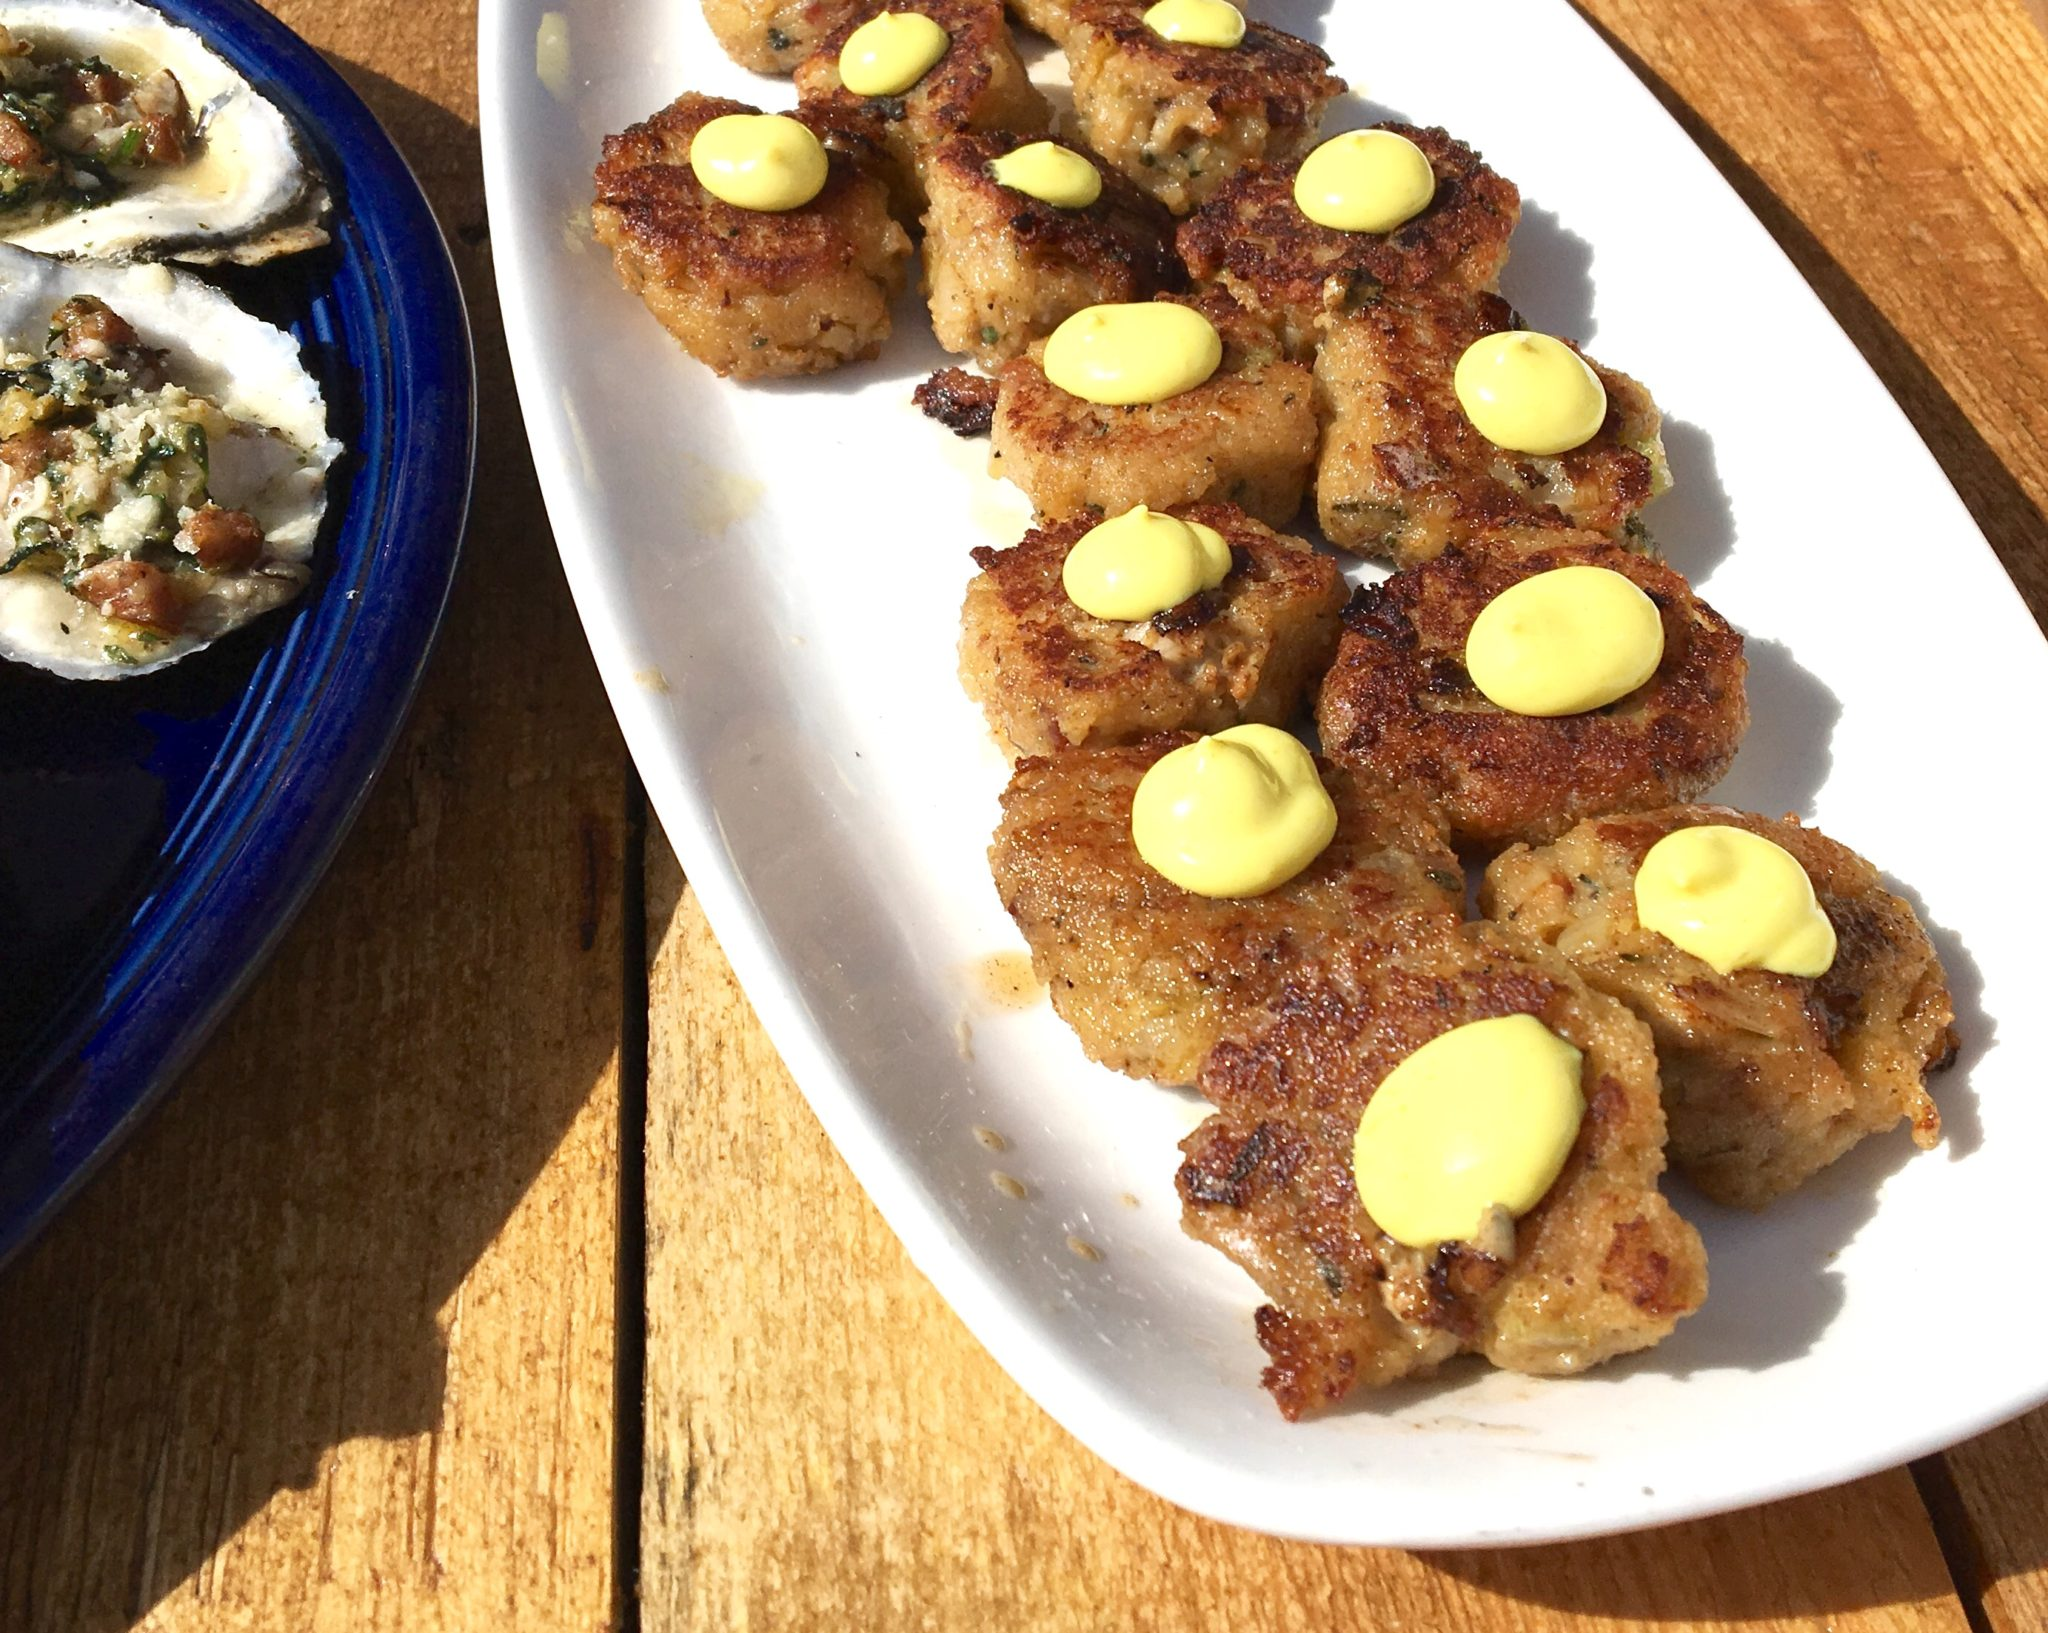 Oyster Cakes with Lemon Turmeric Aioli recipe.